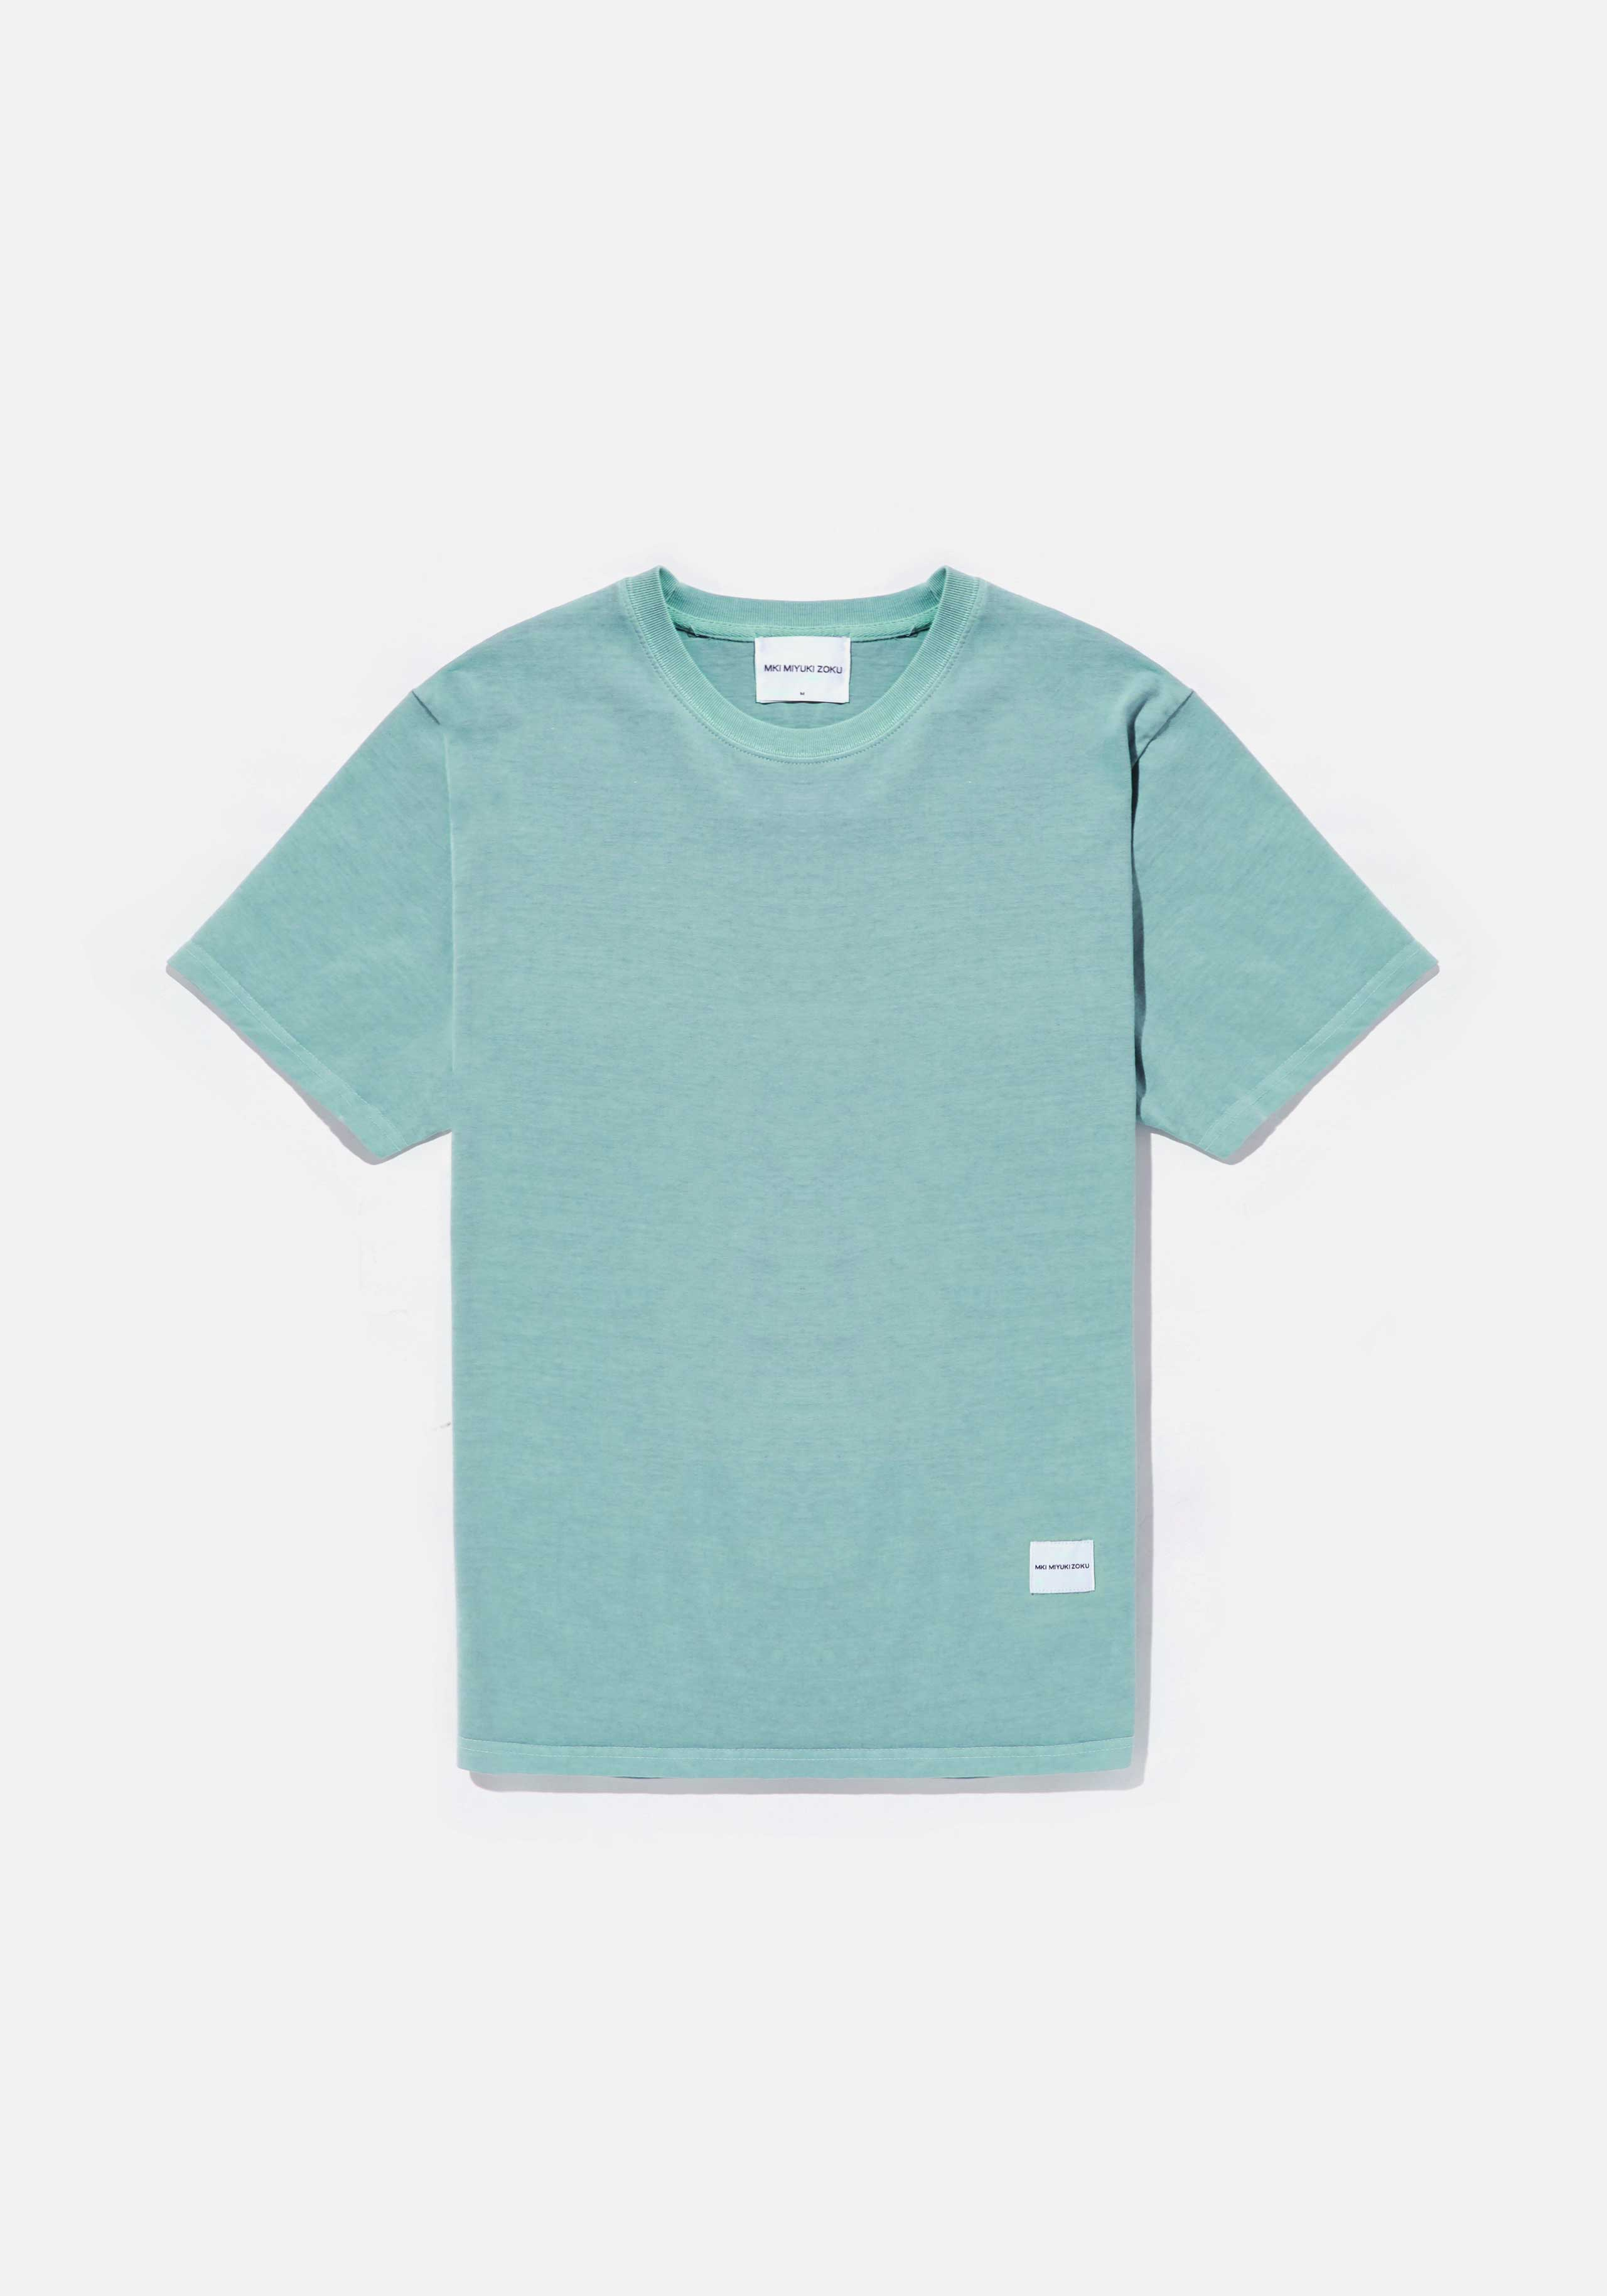 mki pigment dyed tee 1